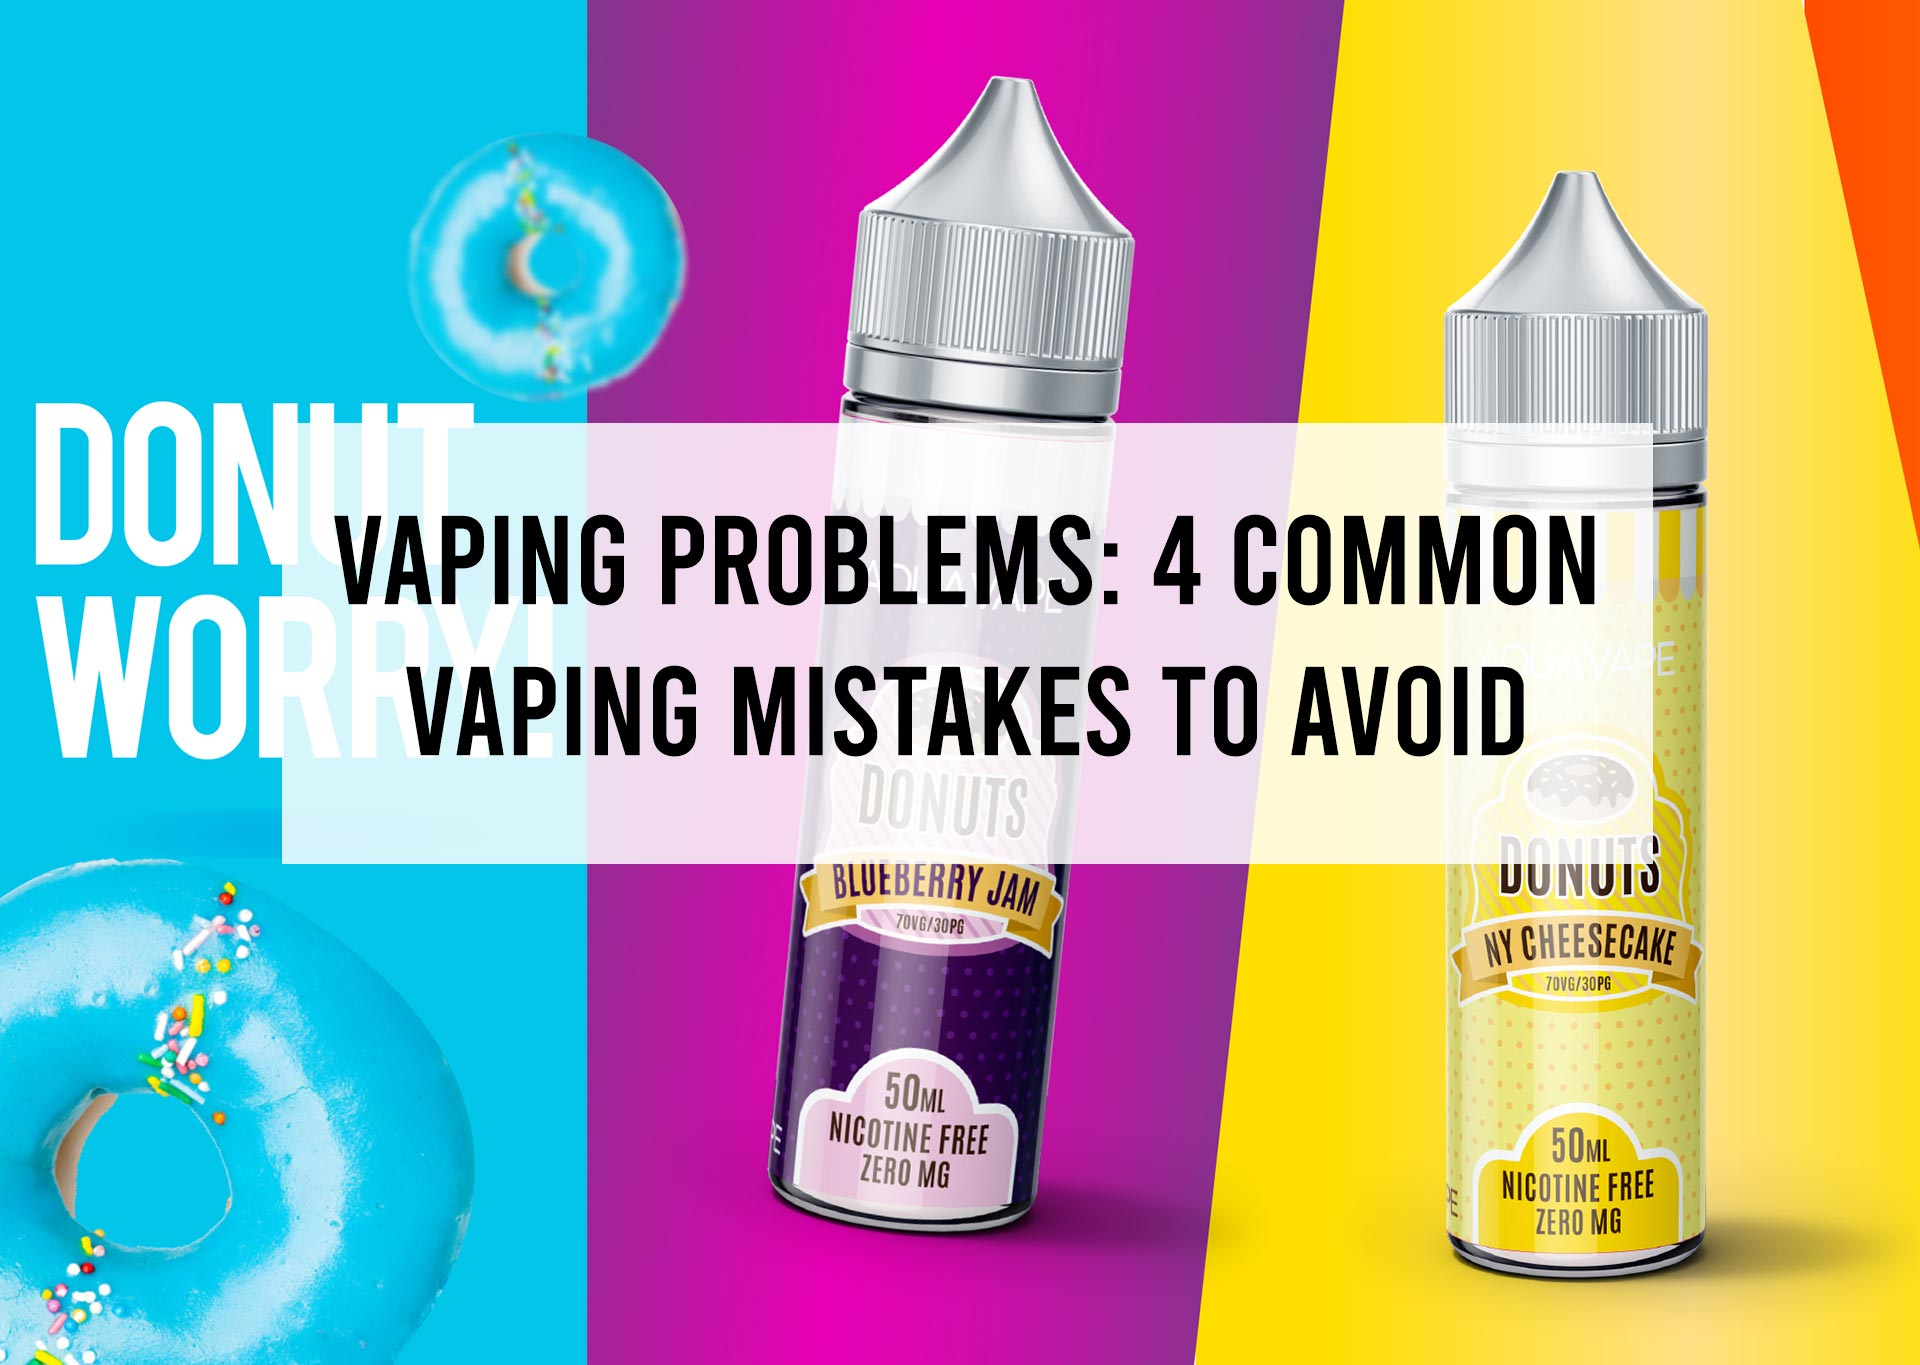 Vaping-Problems--4-Common-Vaping-Mistakes-to-Avoid